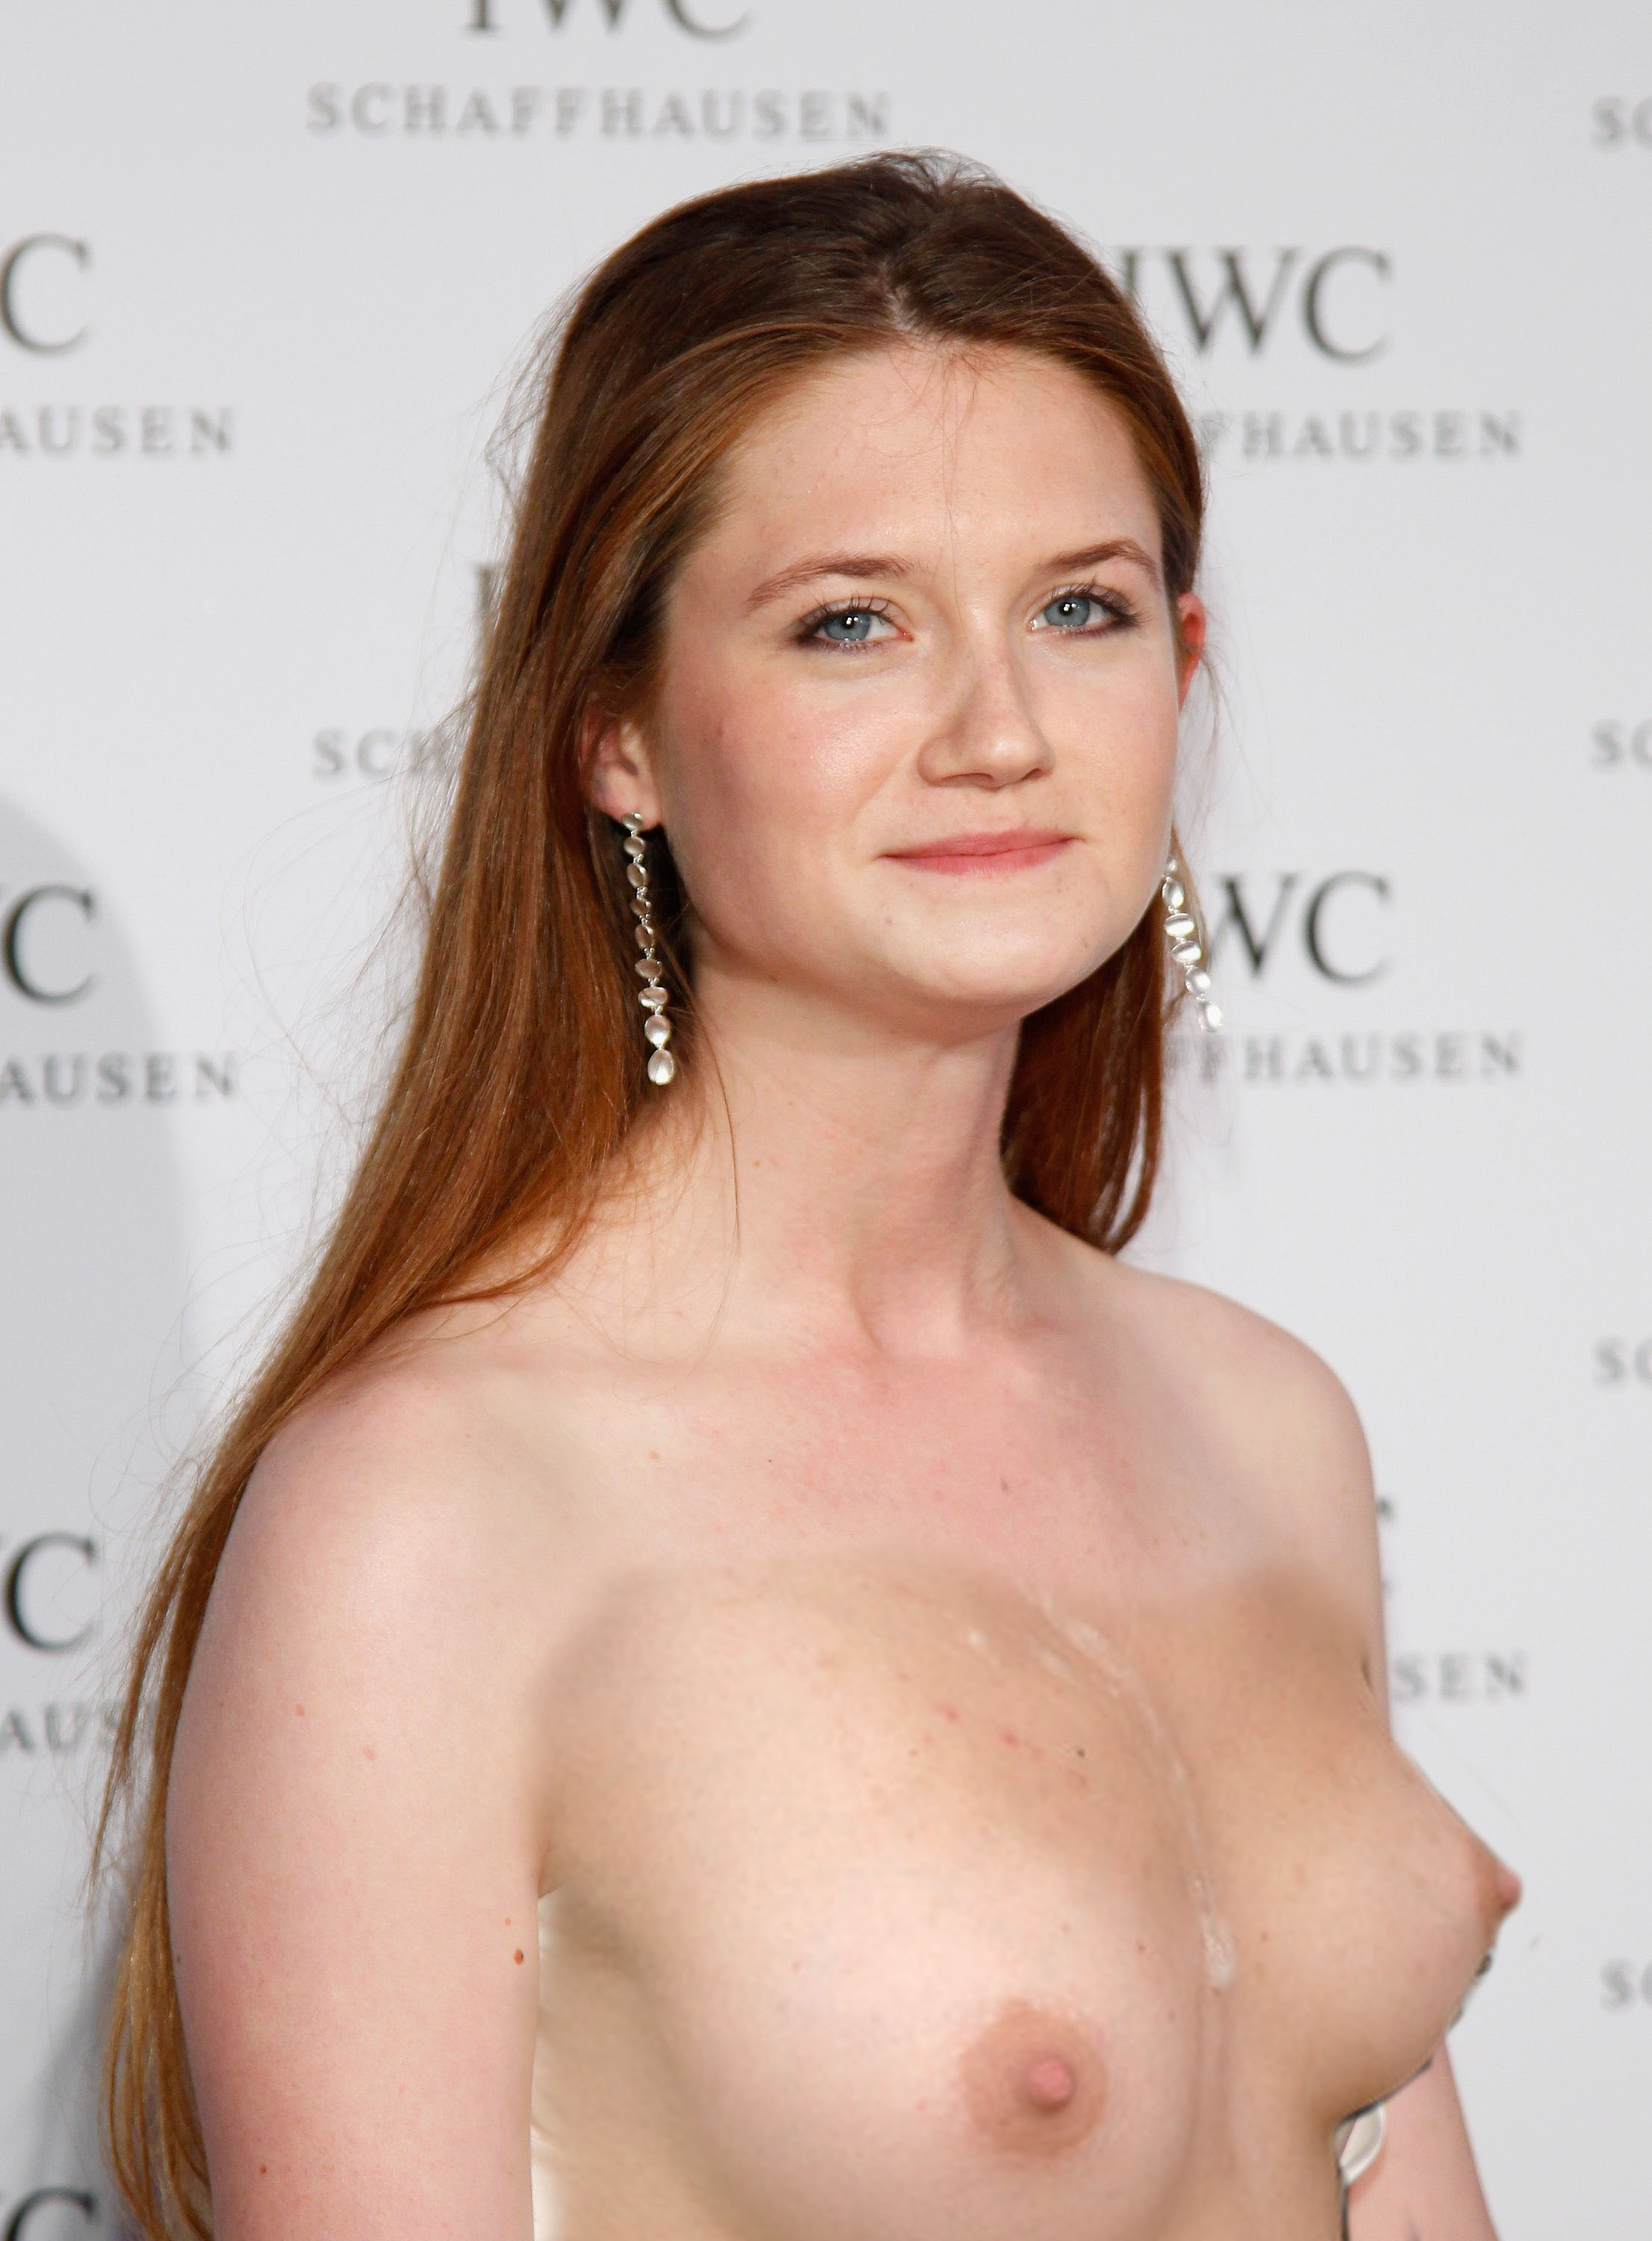 Bonnie_Wright_IWC_-2 cópia.jpg (523.1 KiB) Viewed 11046 times